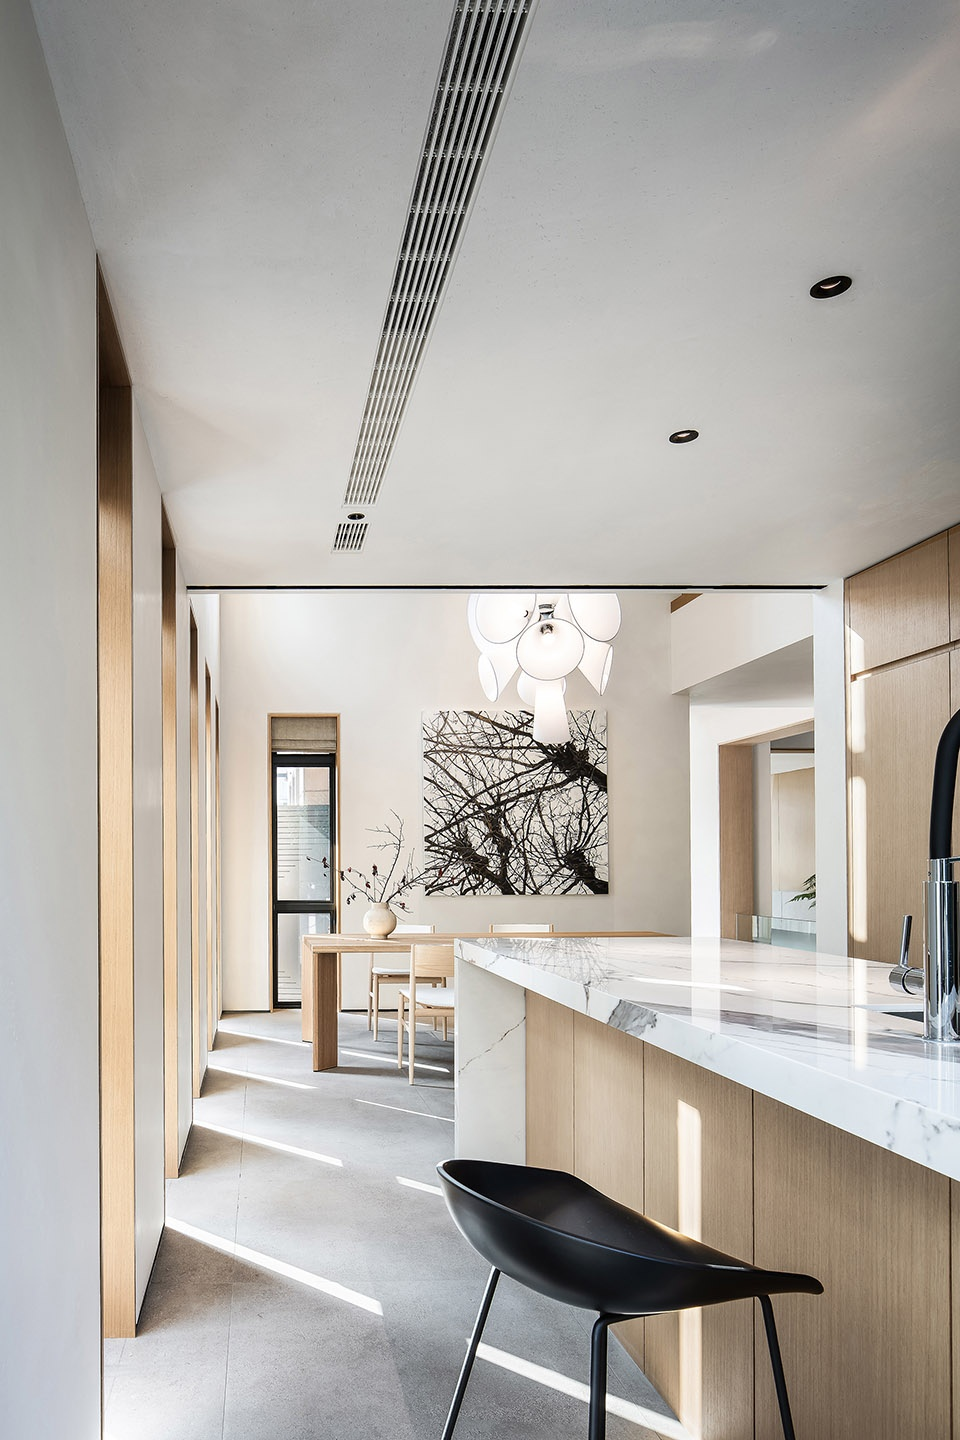 039-a-desired-home-china-by-liang-architecture-studio-960x1440.jpg